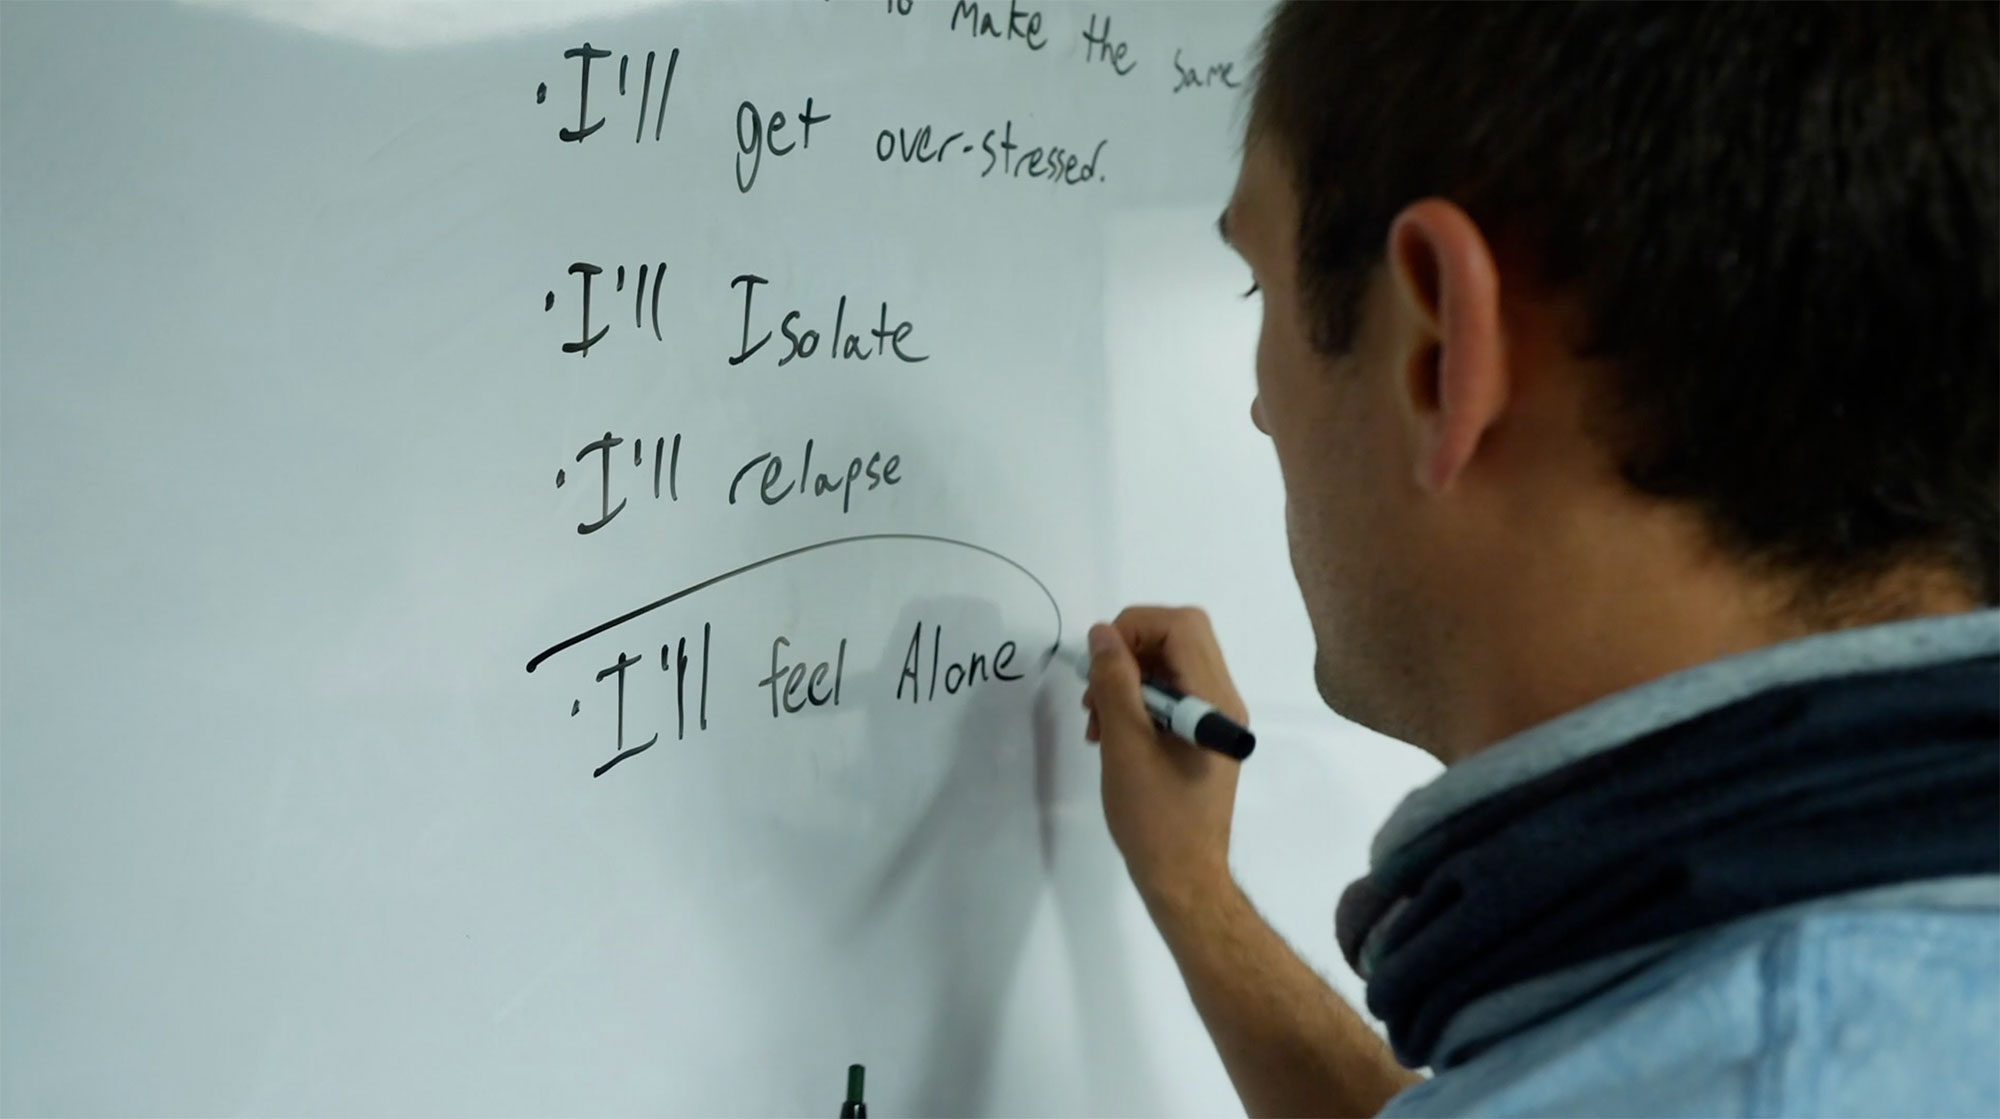 White board with man writing